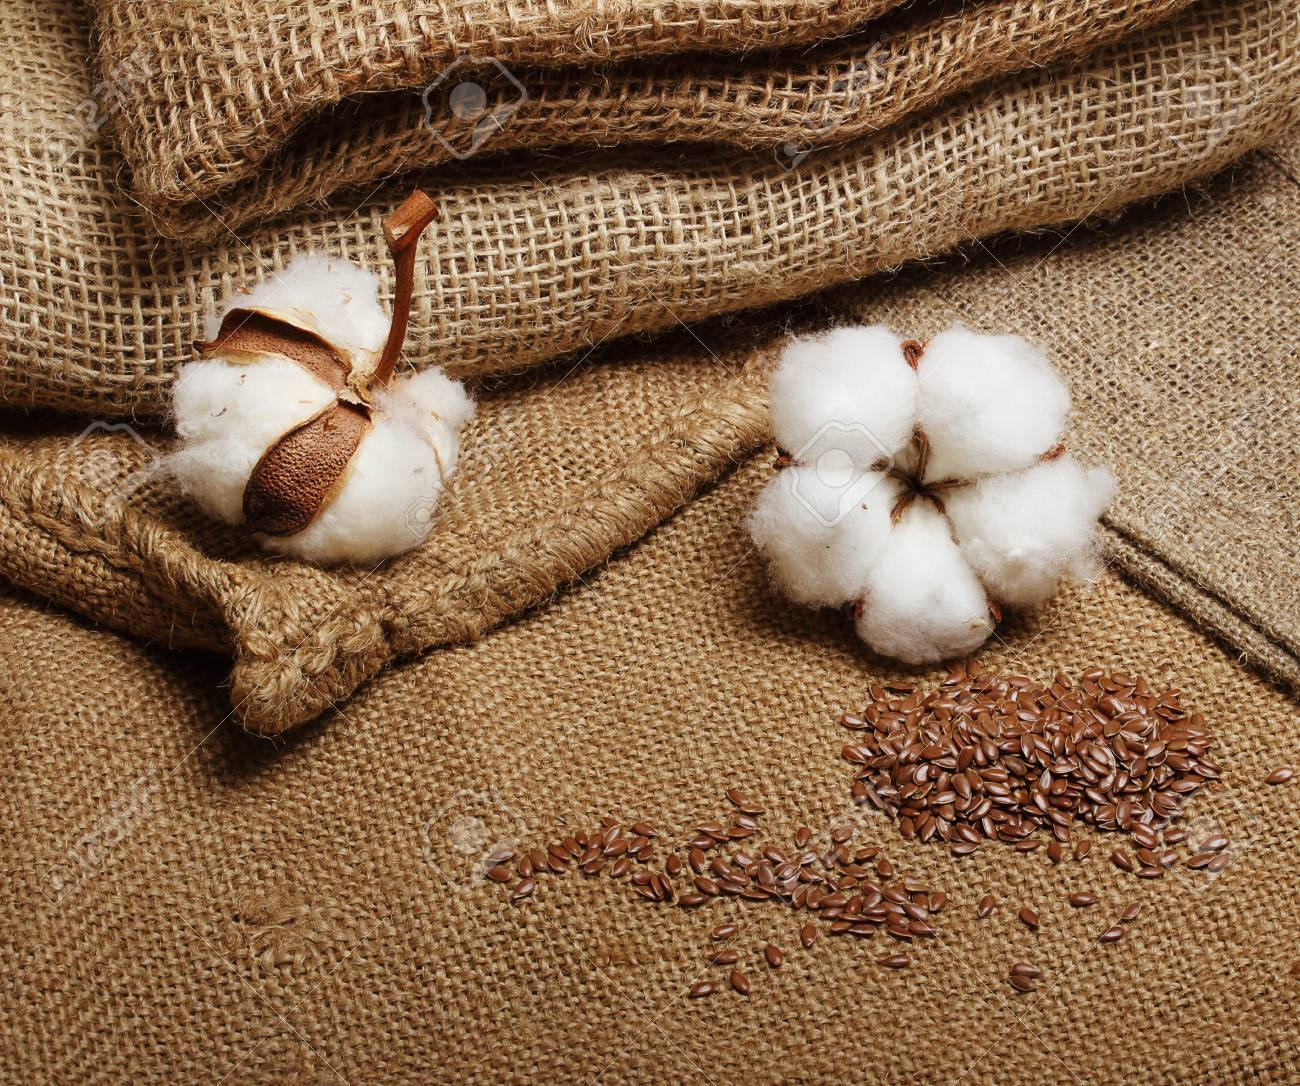 Cotton plant flower with flax seeds on hessian sack textile background - 61544485